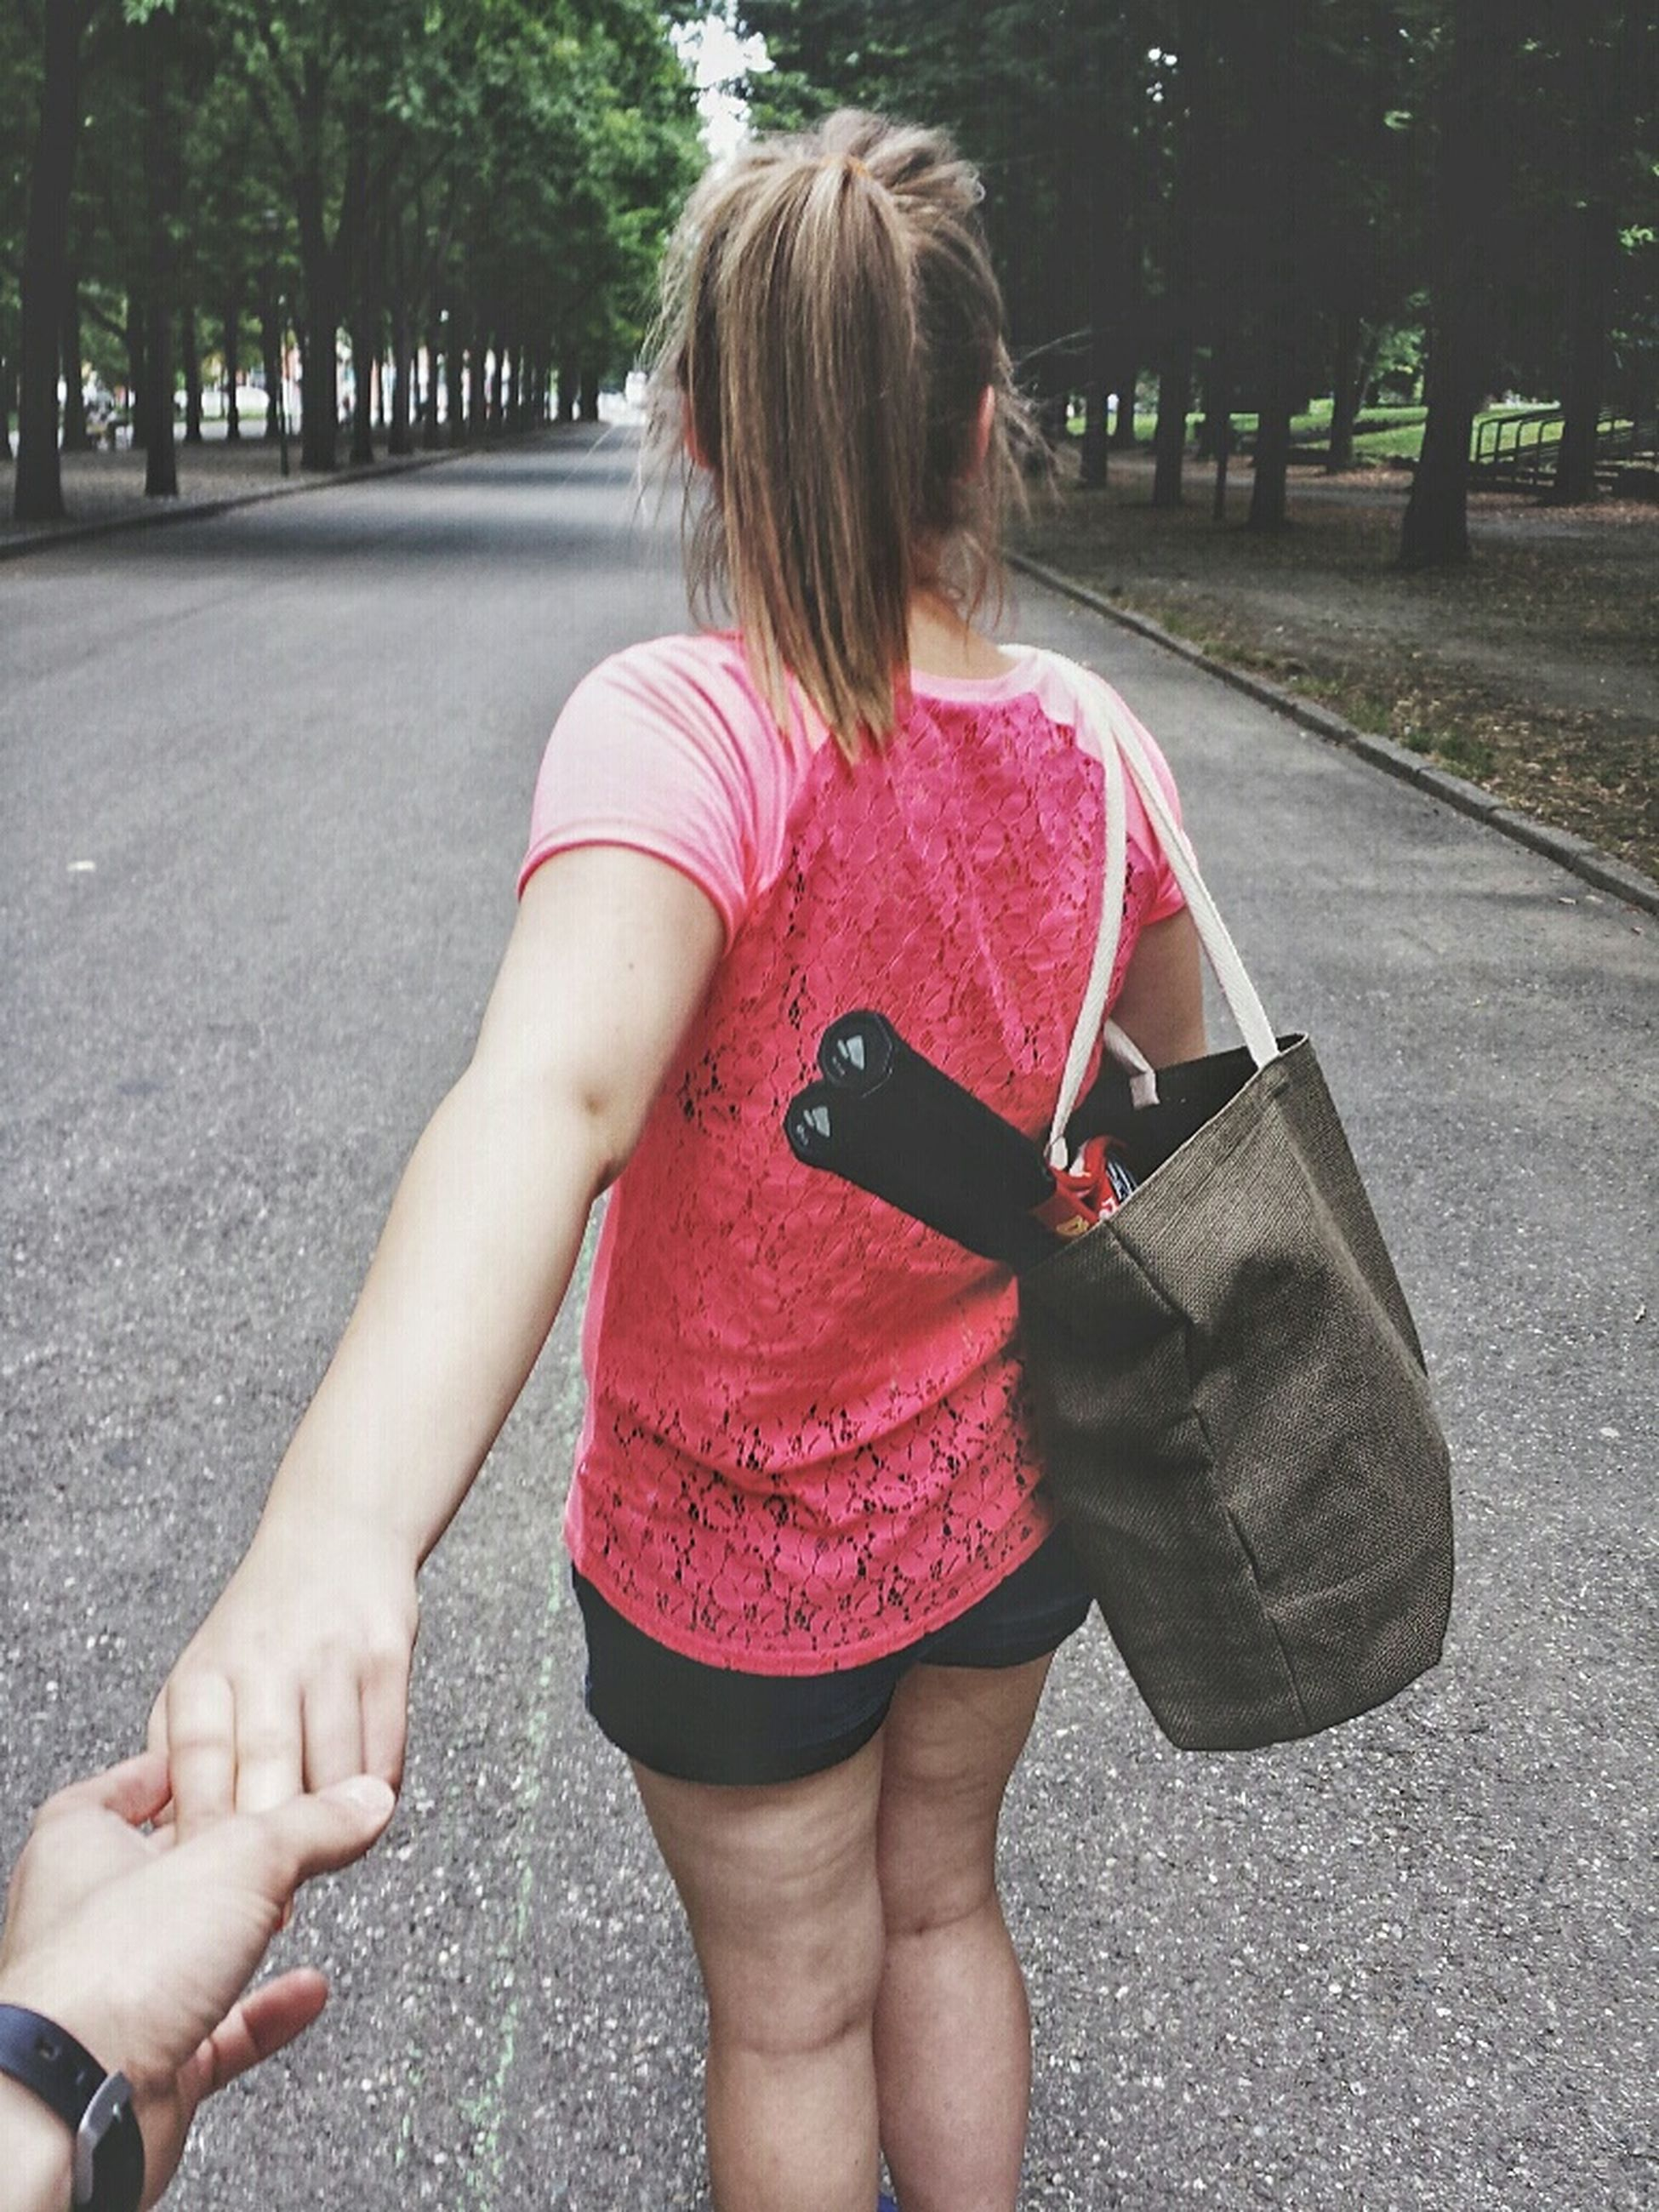 childhood, lifestyles, leisure activity, full length, casual clothing, girls, elementary age, person, innocence, togetherness, rear view, cute, love, holding, park - man made space, boys, street